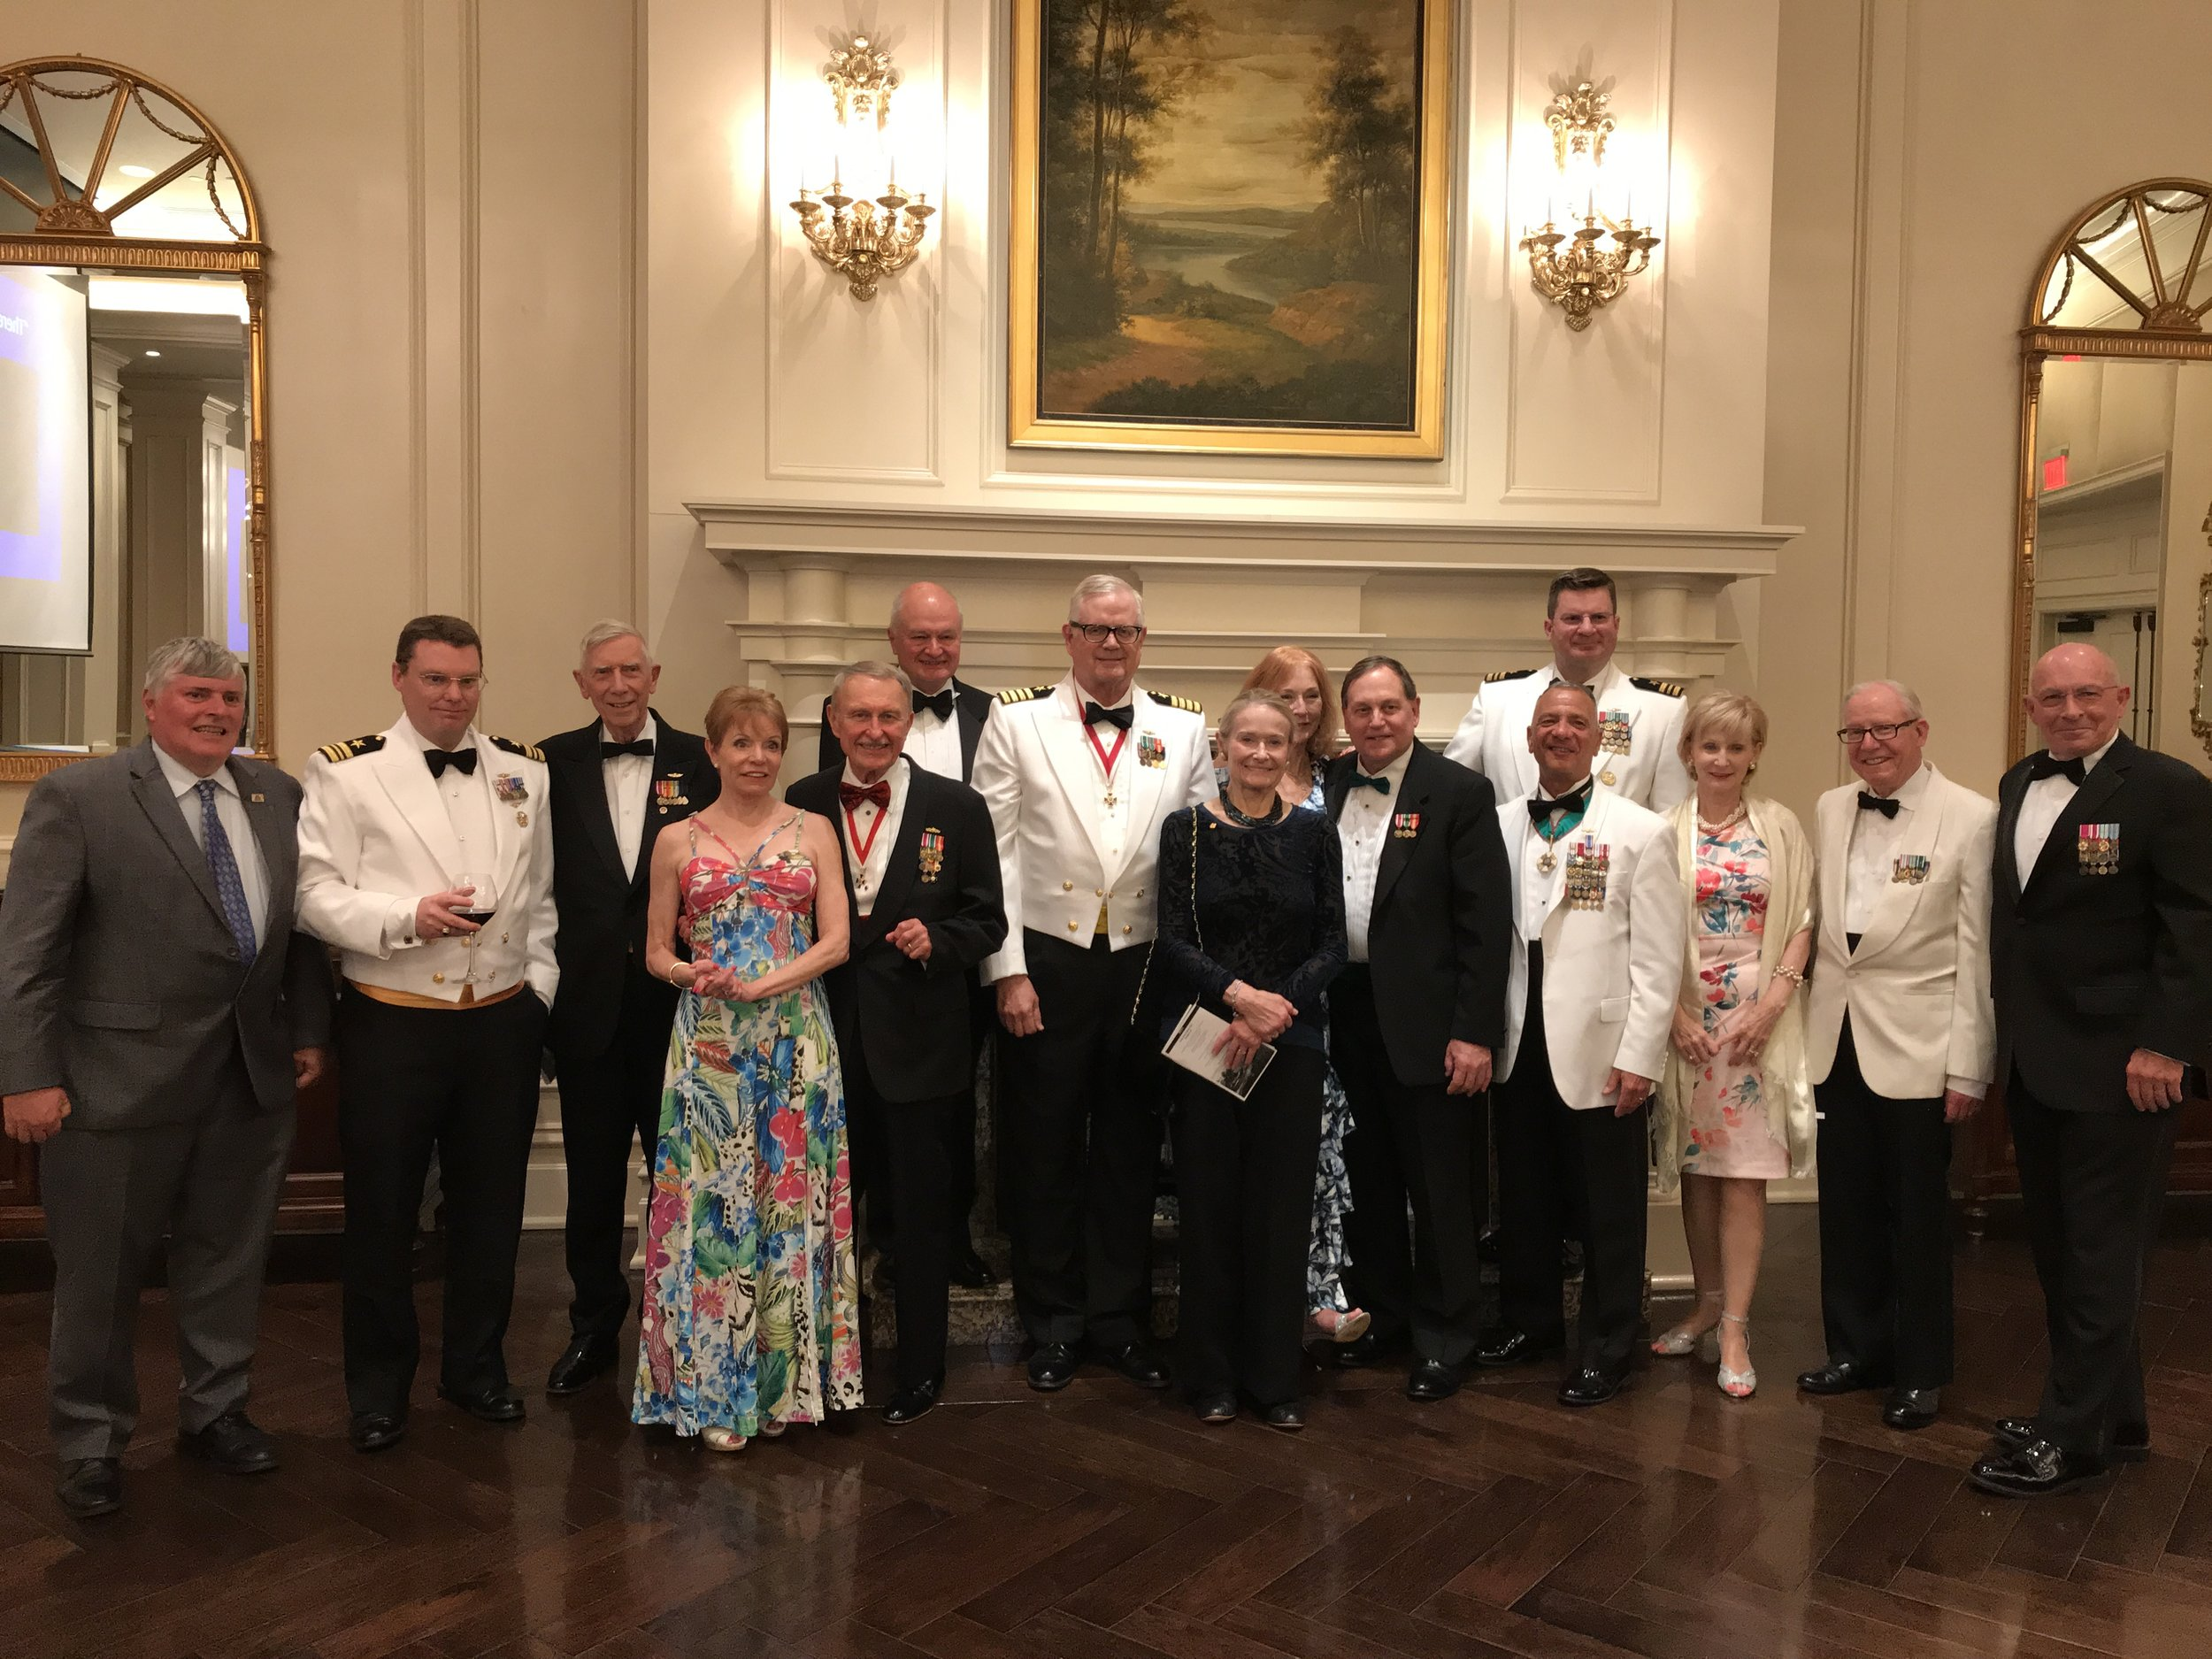 National Capital Commandery companions at the Annual Battle of Midway Commemorative Dinner.